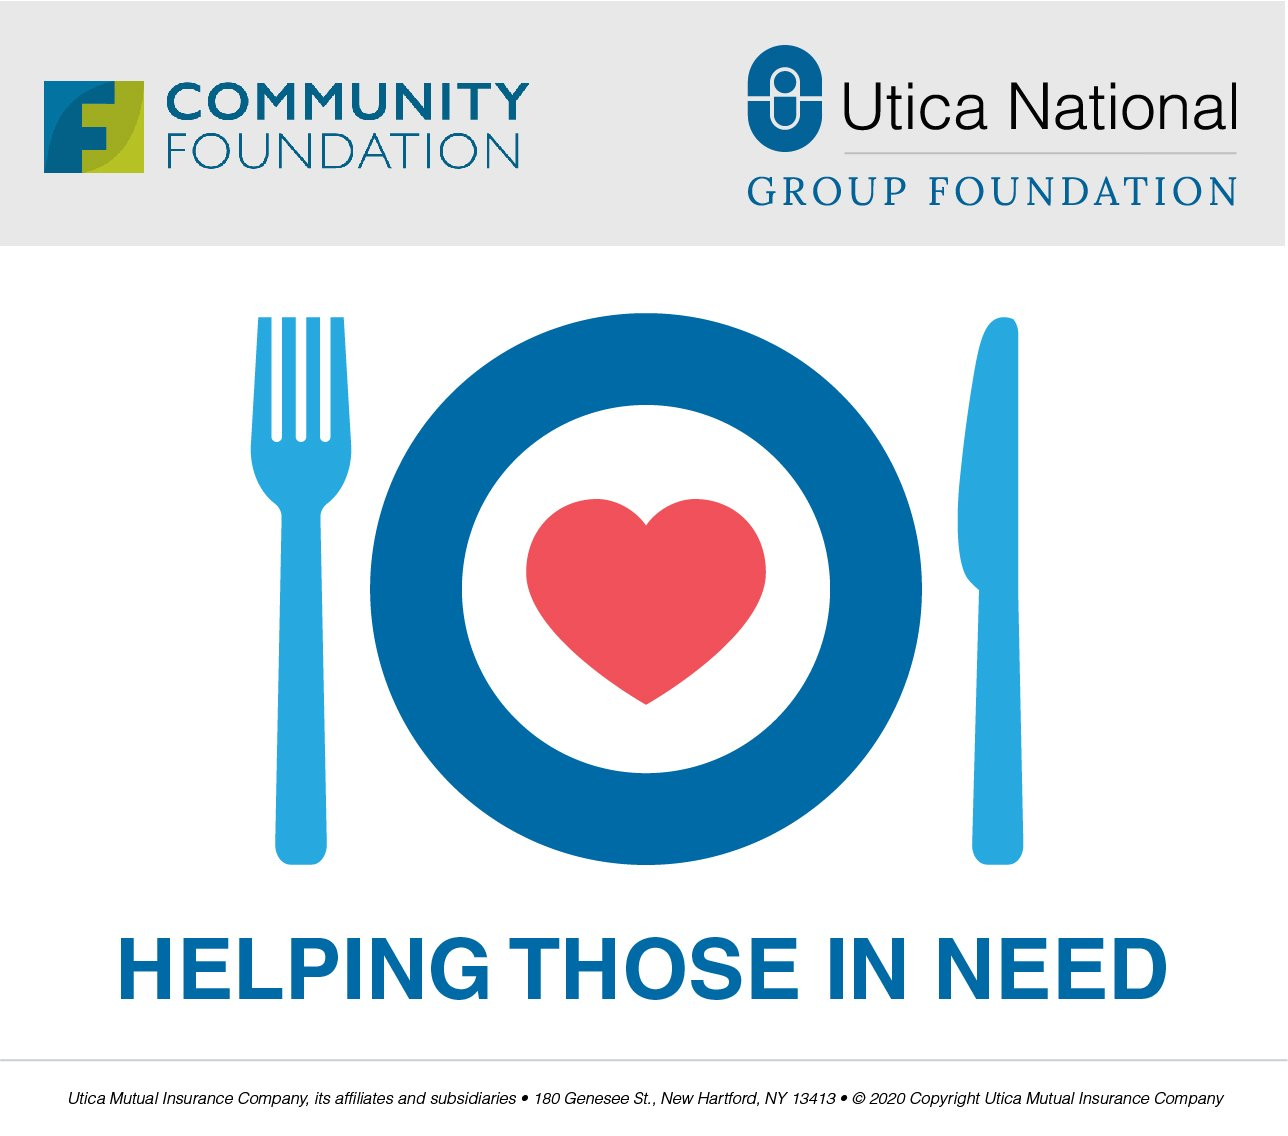 Utica National Group Foundation Awards $250,000 to Food Pantries and Soup Kitchens